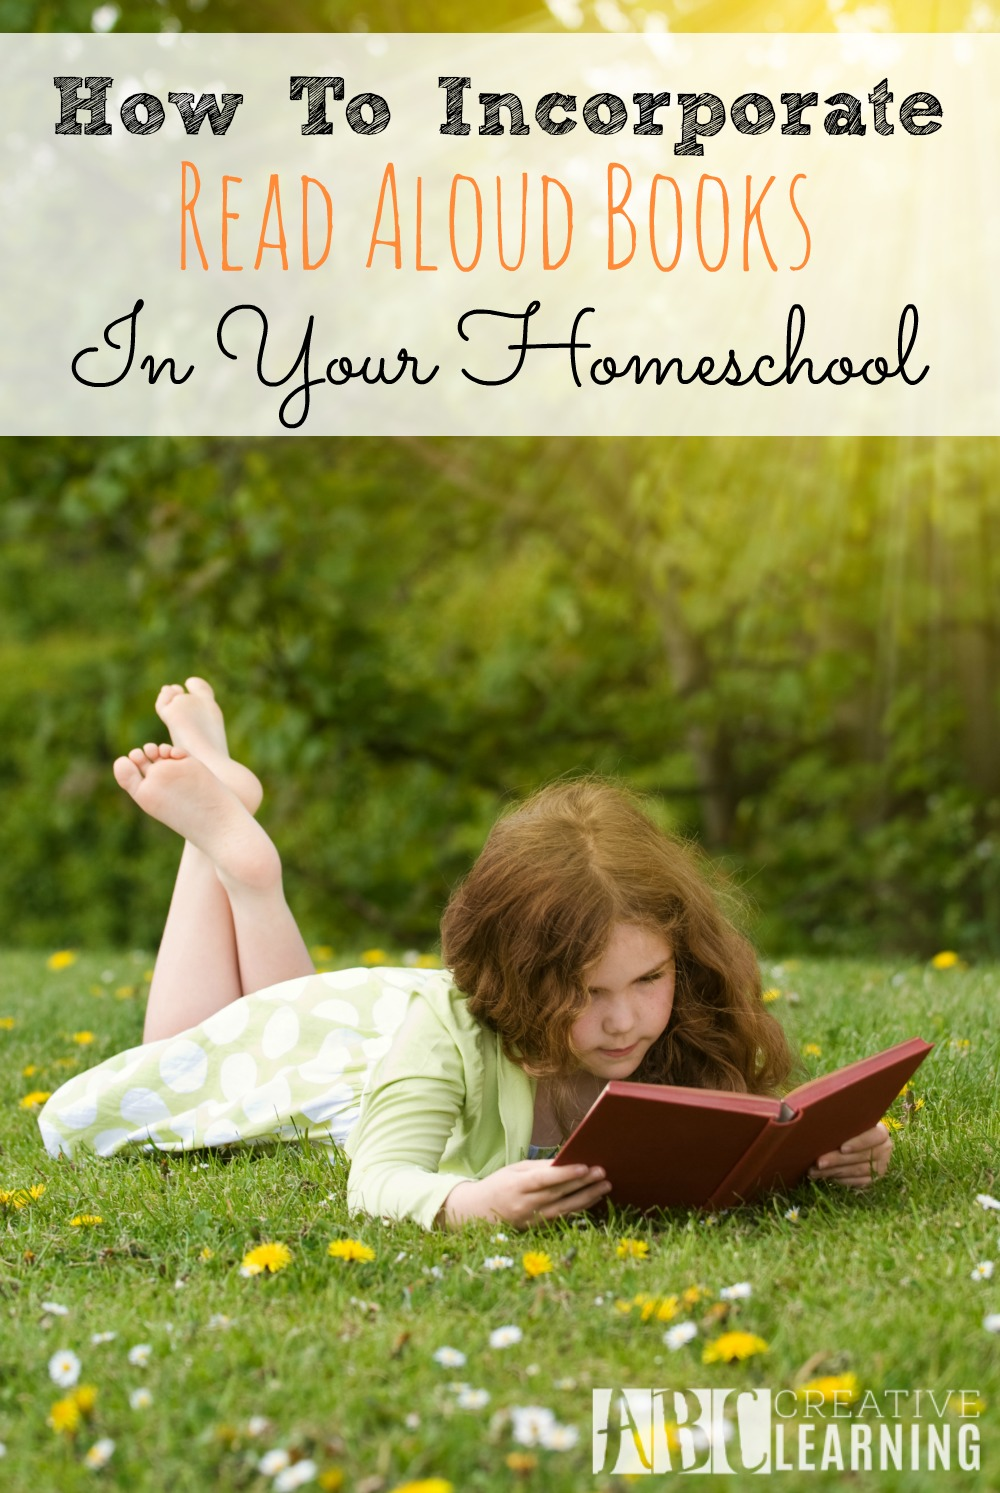 How To Incorporate Read Aloud Books Into Your Homeschooling